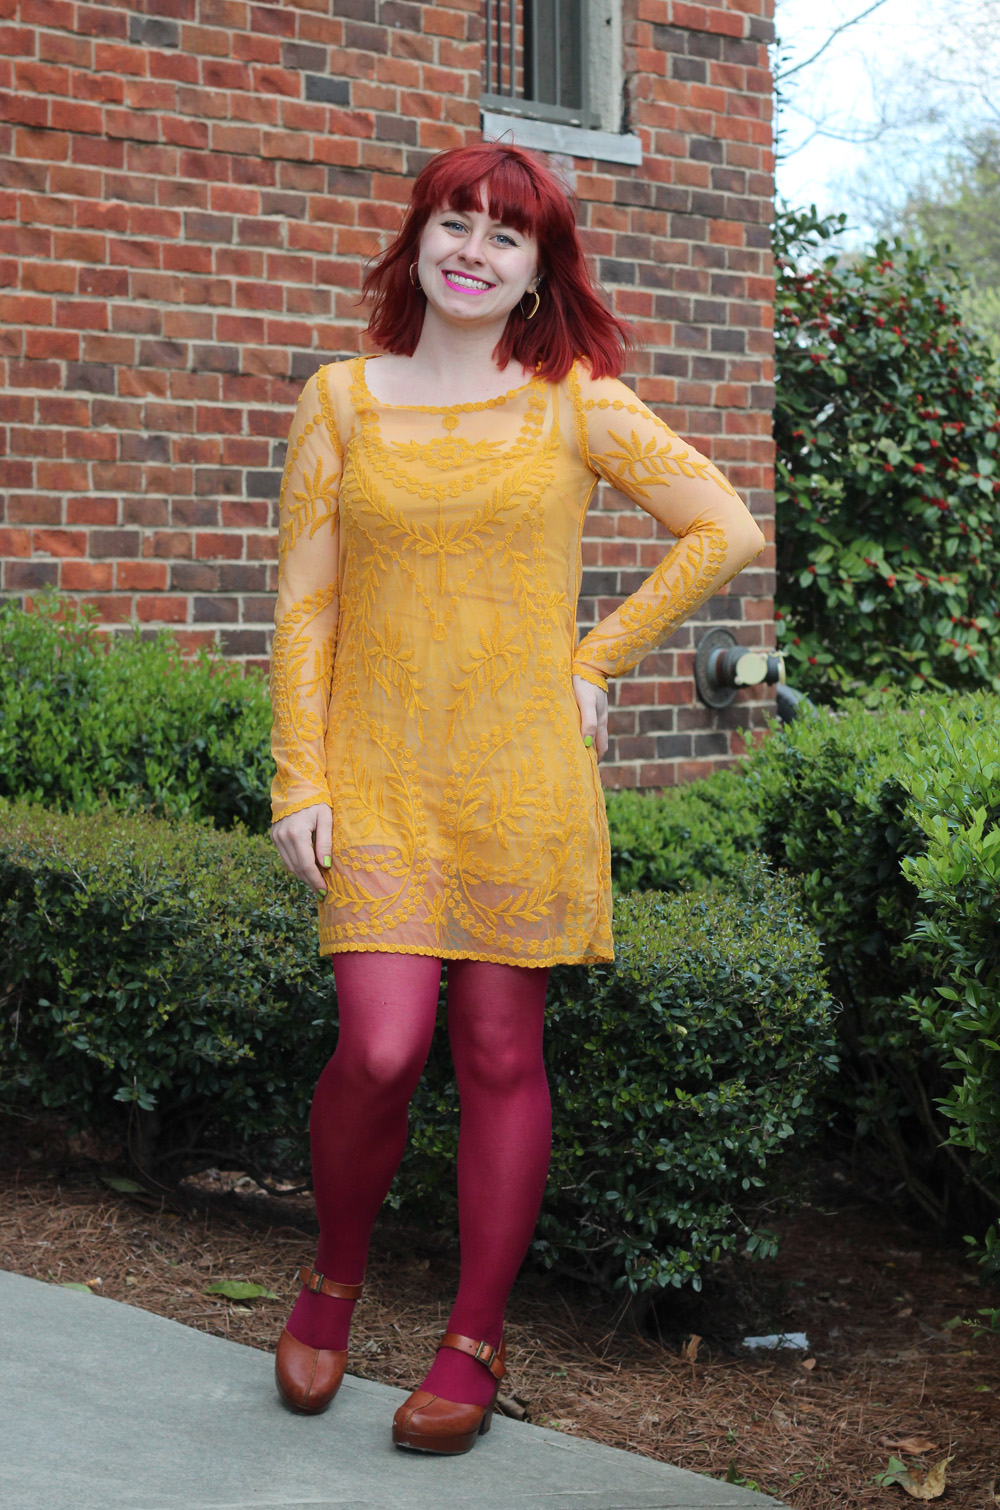 Sheer Embroidered Mustard Yellow Dress, Bright Pink Tights, and Clogs